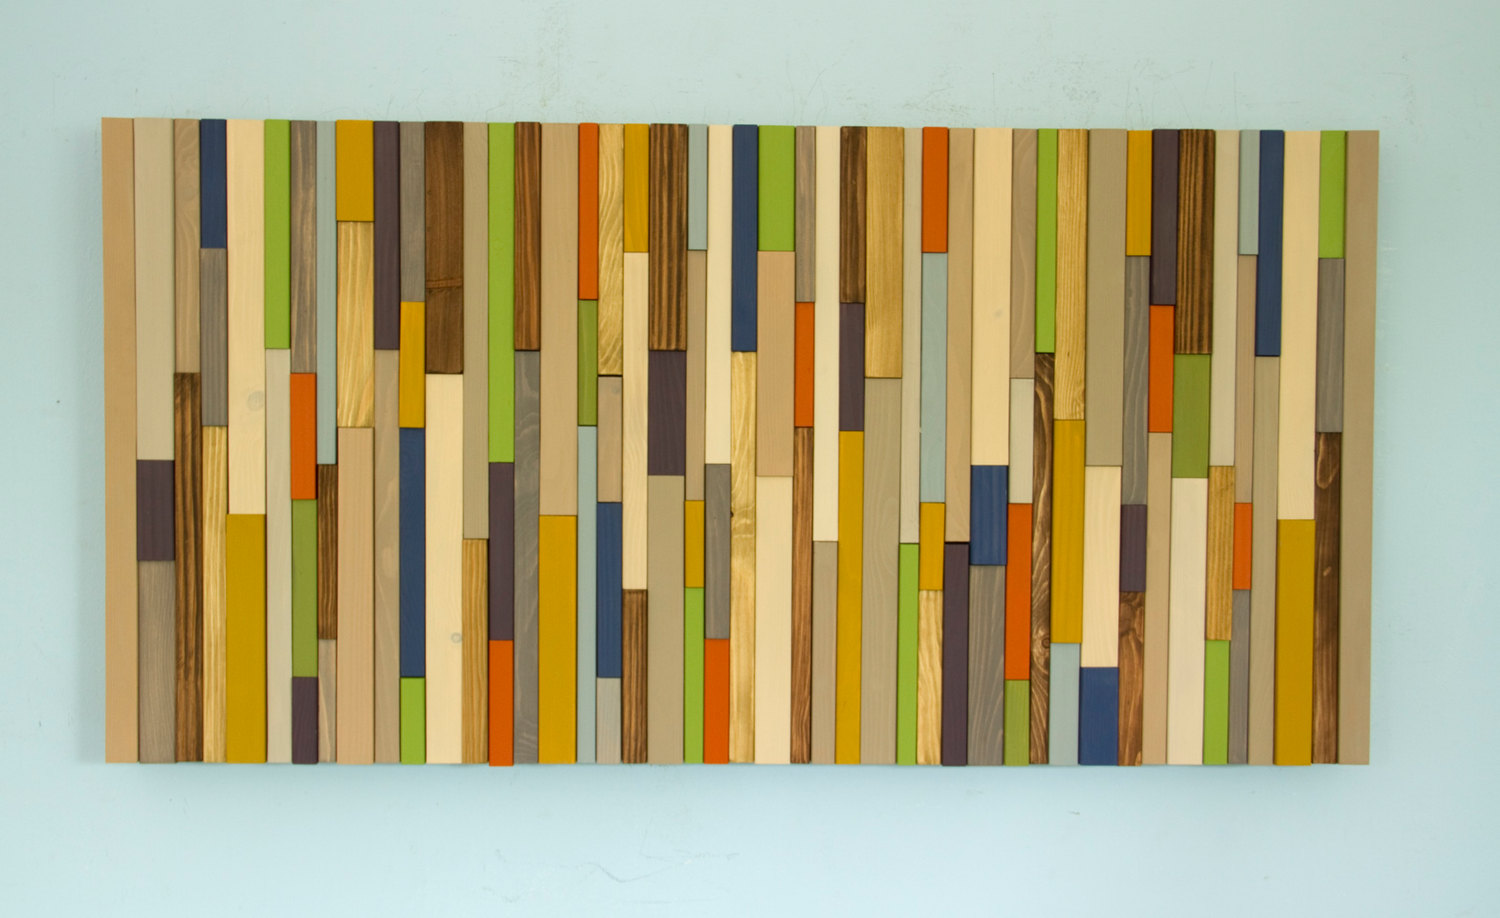 Modern wood art, Mid century wood wall art, new sculpture 2017 colour trends